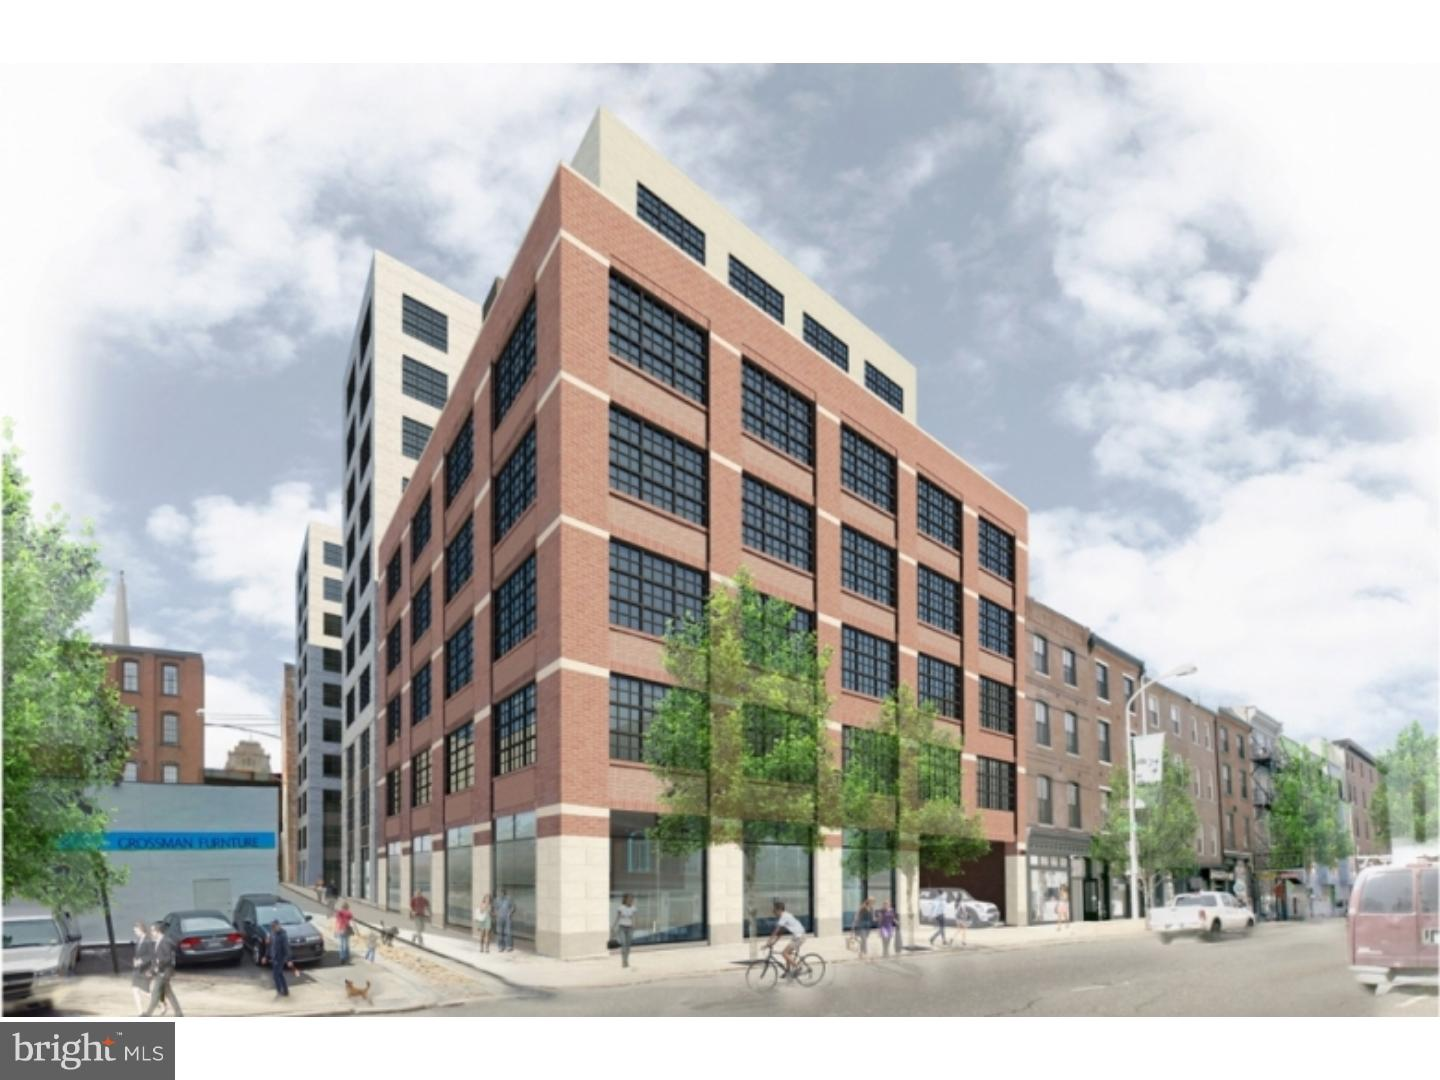 SUPER SIZED, and SUPER SUNNY 2 bedroom, 2 bath BRAND NEW apartment, at 218 ARCH STREET. AWESOME living and dining space. Custom kitchen with GRANITE counter tops, STAINLESS steel appliances, and BREAKFAST BAR. Fantastic and proportioned bedroom, great closet space, and stunning EUROPEAN style bathroom with GLASS shower door. 218 Arch is filled with amenities: ROOF top lounge,with glorious views of the BEN FRANKLIN bridge and Center City, PRIVATE resident courtyard, GYM, PELATON room, LOUNGE,with flat screen TVs, billiards, business center, and GARAGE parking for additional fee ! ! ! ONE MONTH FREE on a 13 month lease, and WAIVED application fees for a limited time! Photo's are of model unit.